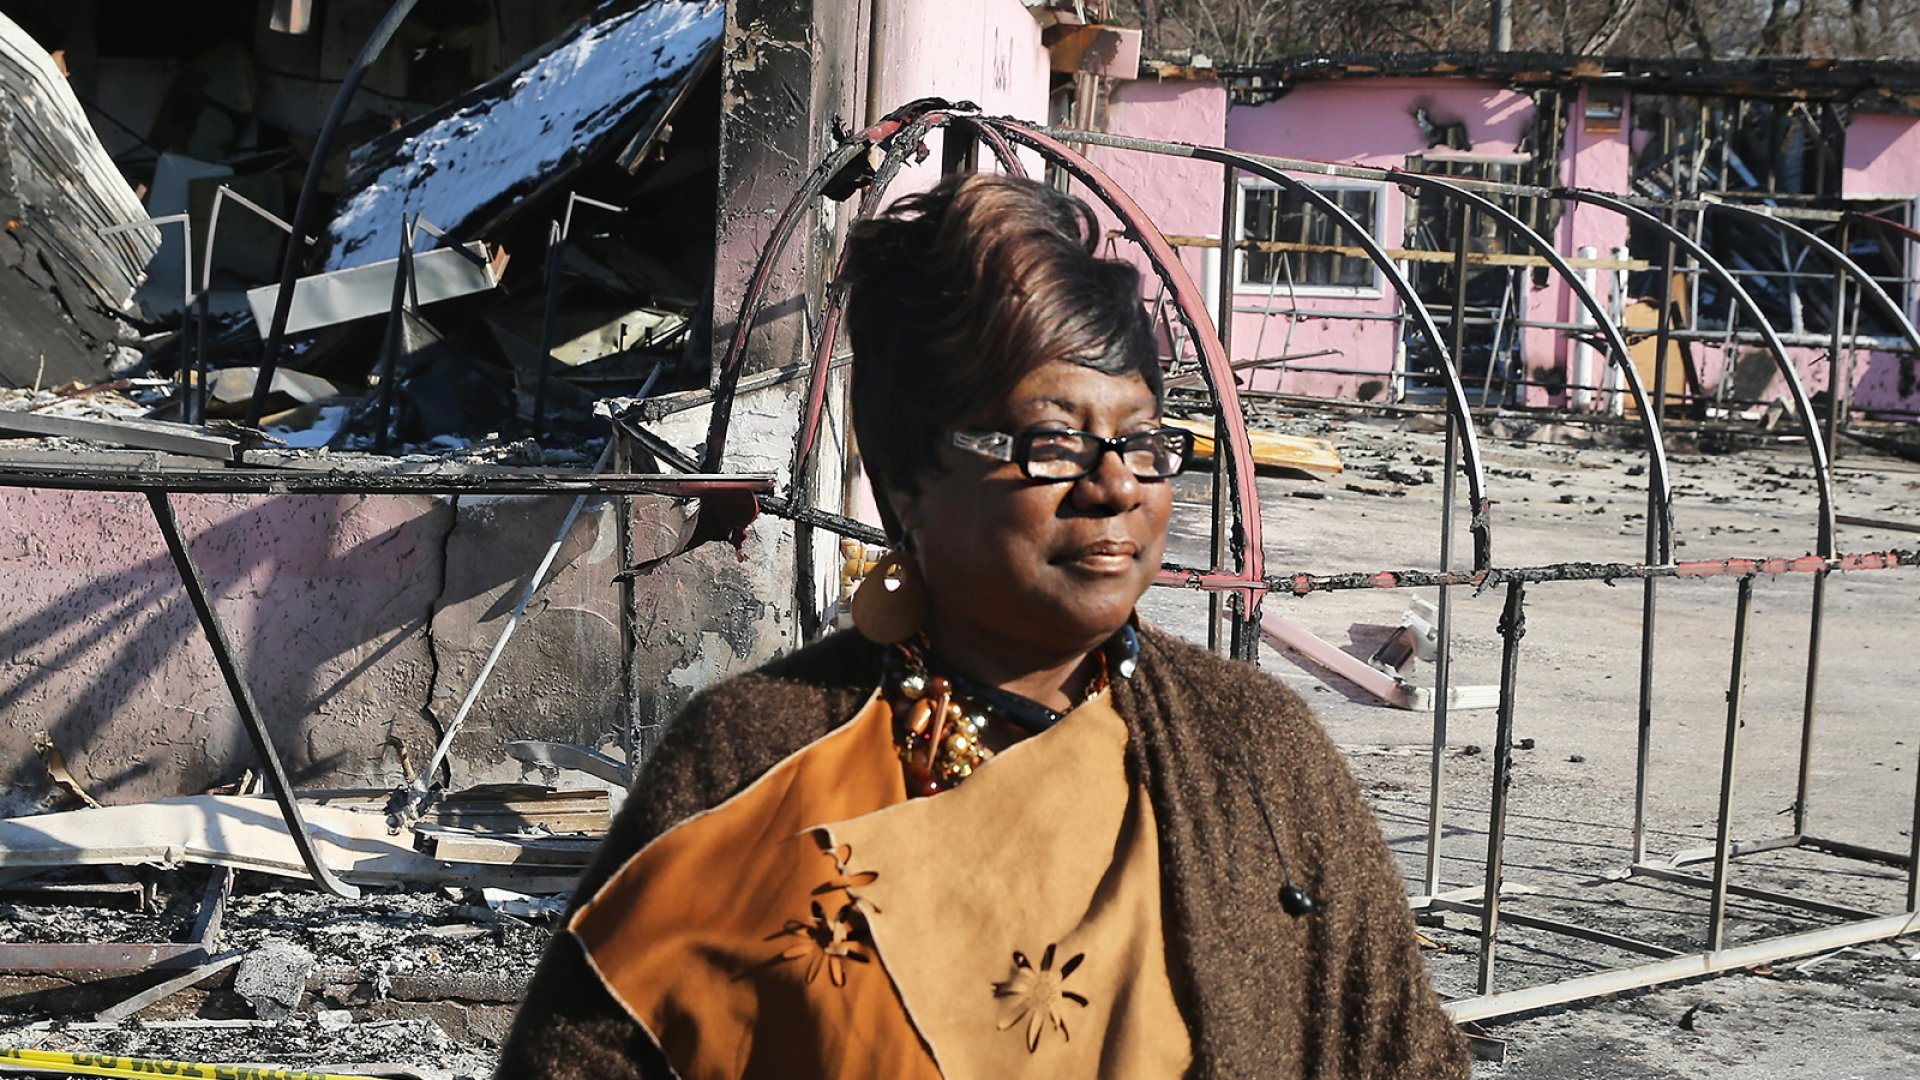 Juanita Morris surveys the remains of her business, Juanita's Fashions R Boutique, after it was destroyed by rioters on November 24, 2014, in Dellwood, Missouri.